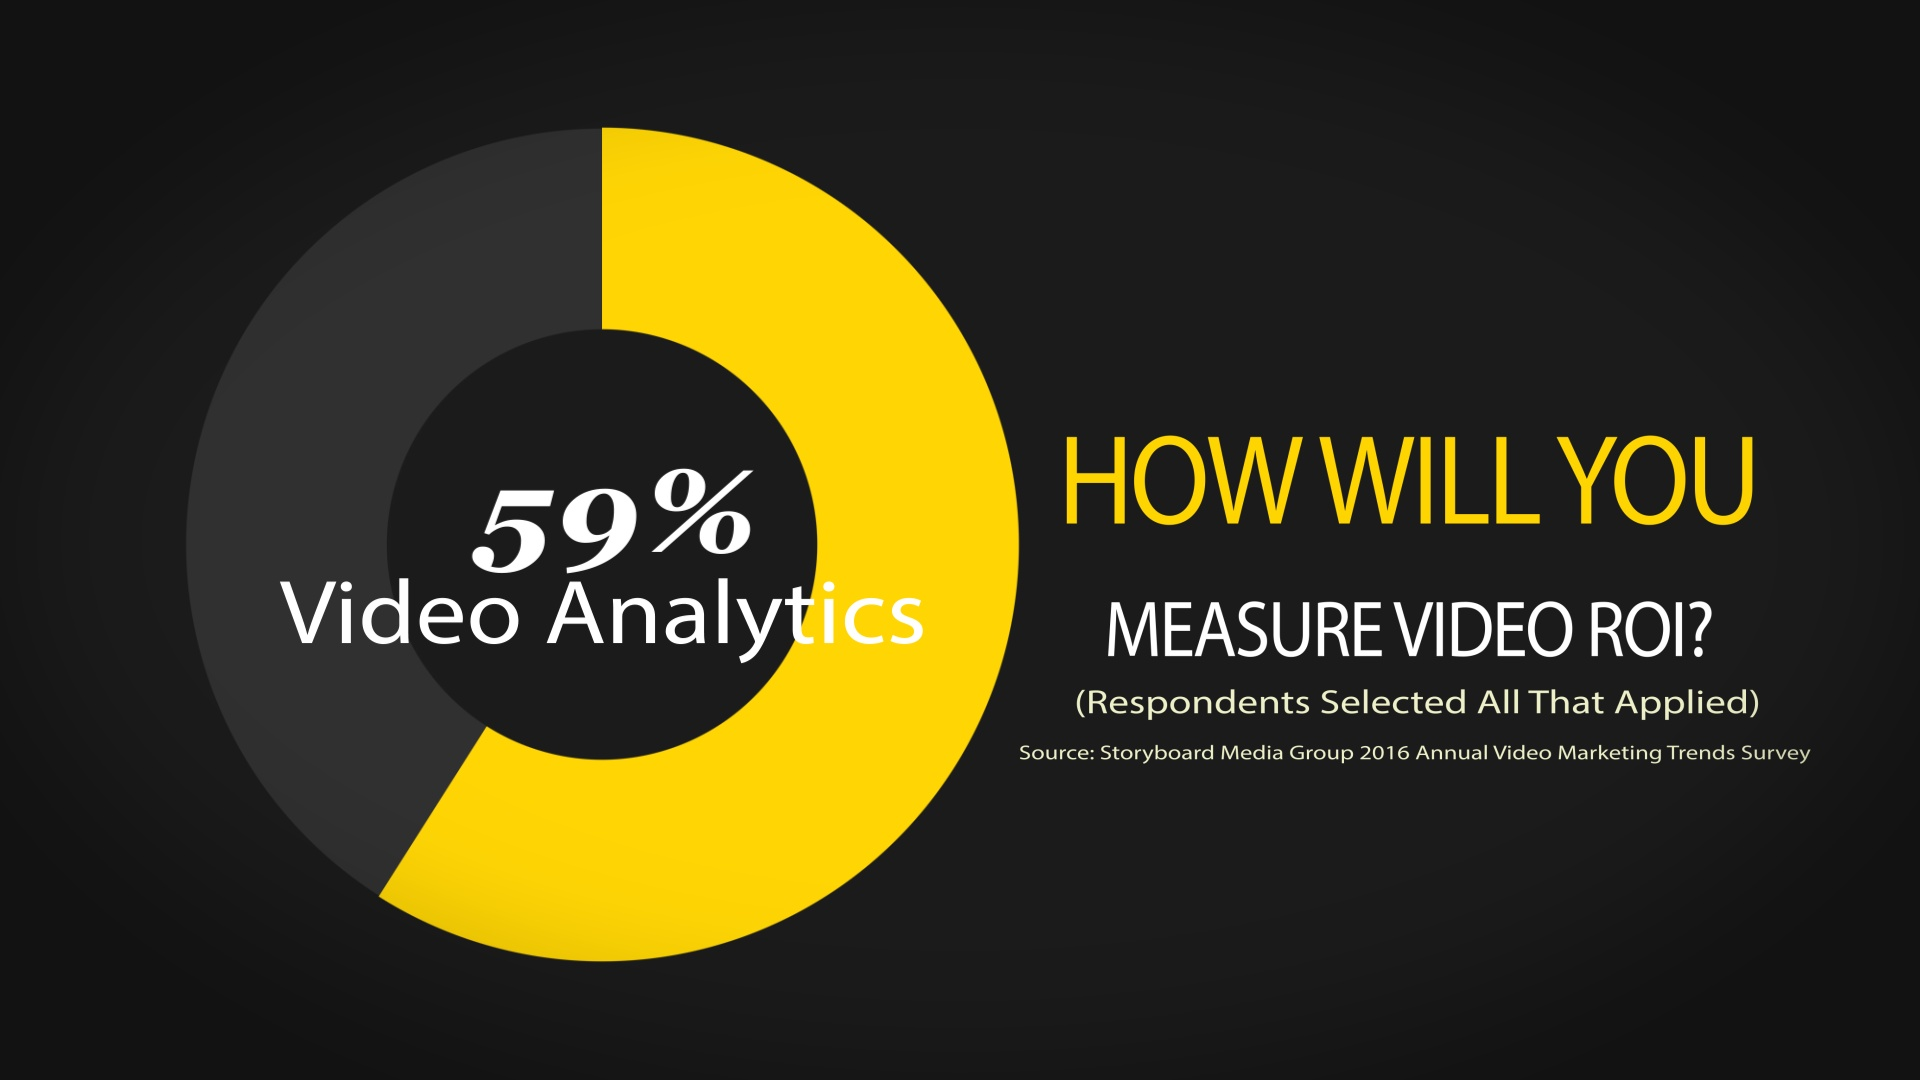 Using video content wisely and knowing how to track its use is key to measuring ROI.